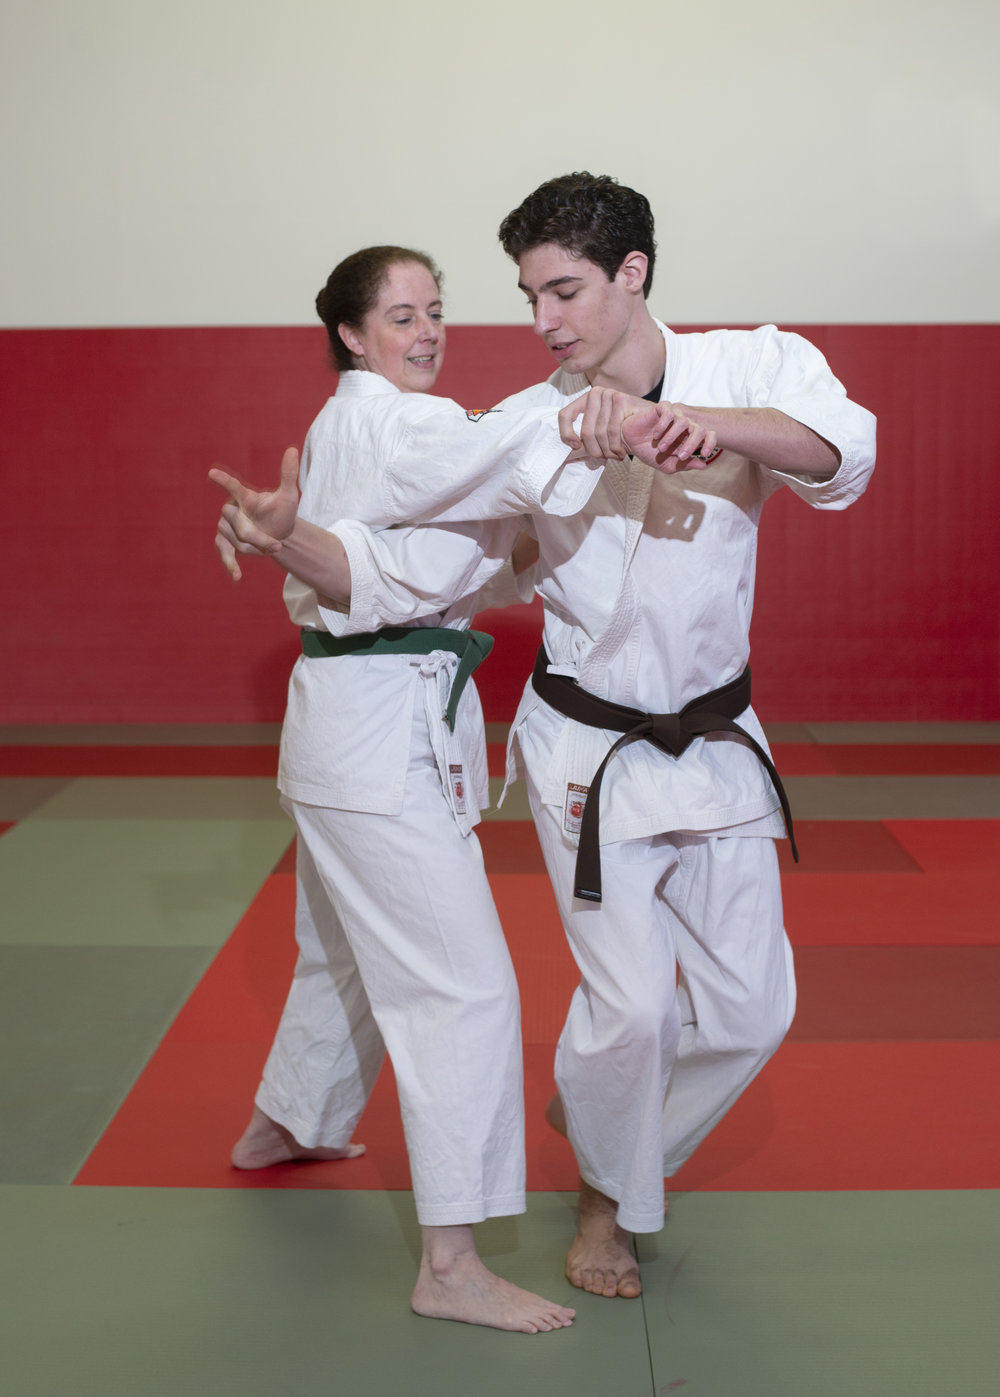 Laurie Prud'homme and Isaac Prud'homme share a love for martial arts and have practiced for 10 years.